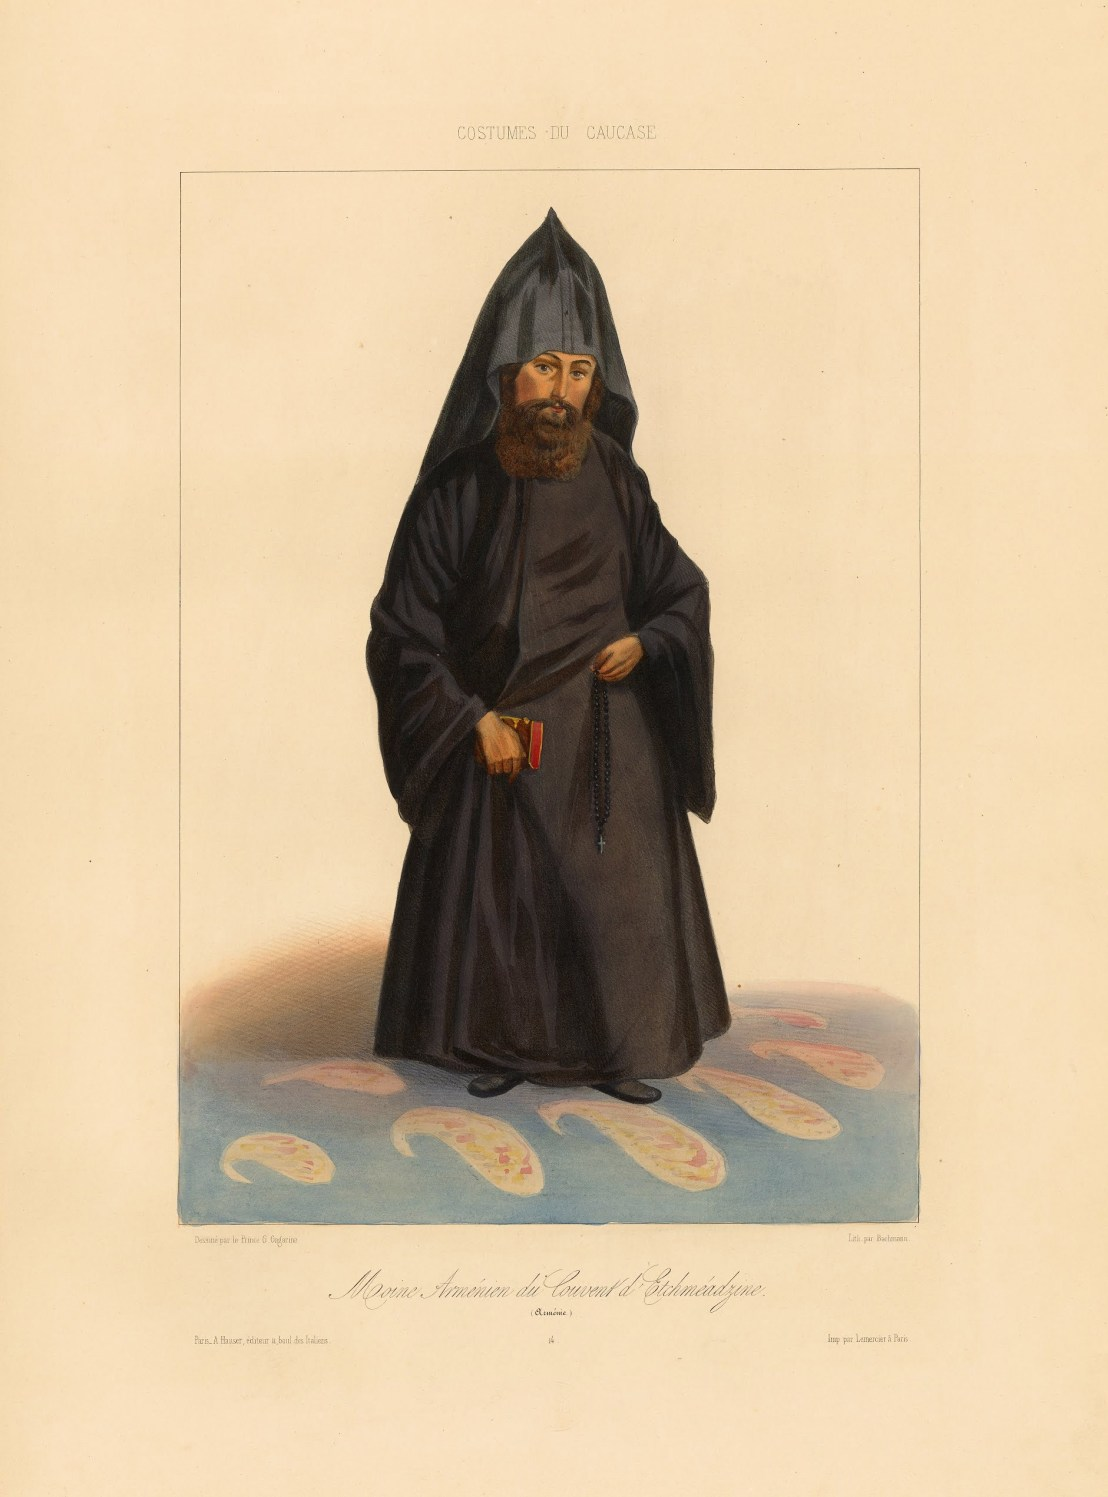 A priest from Armenia by Grigory Gagarin, 1850-1855